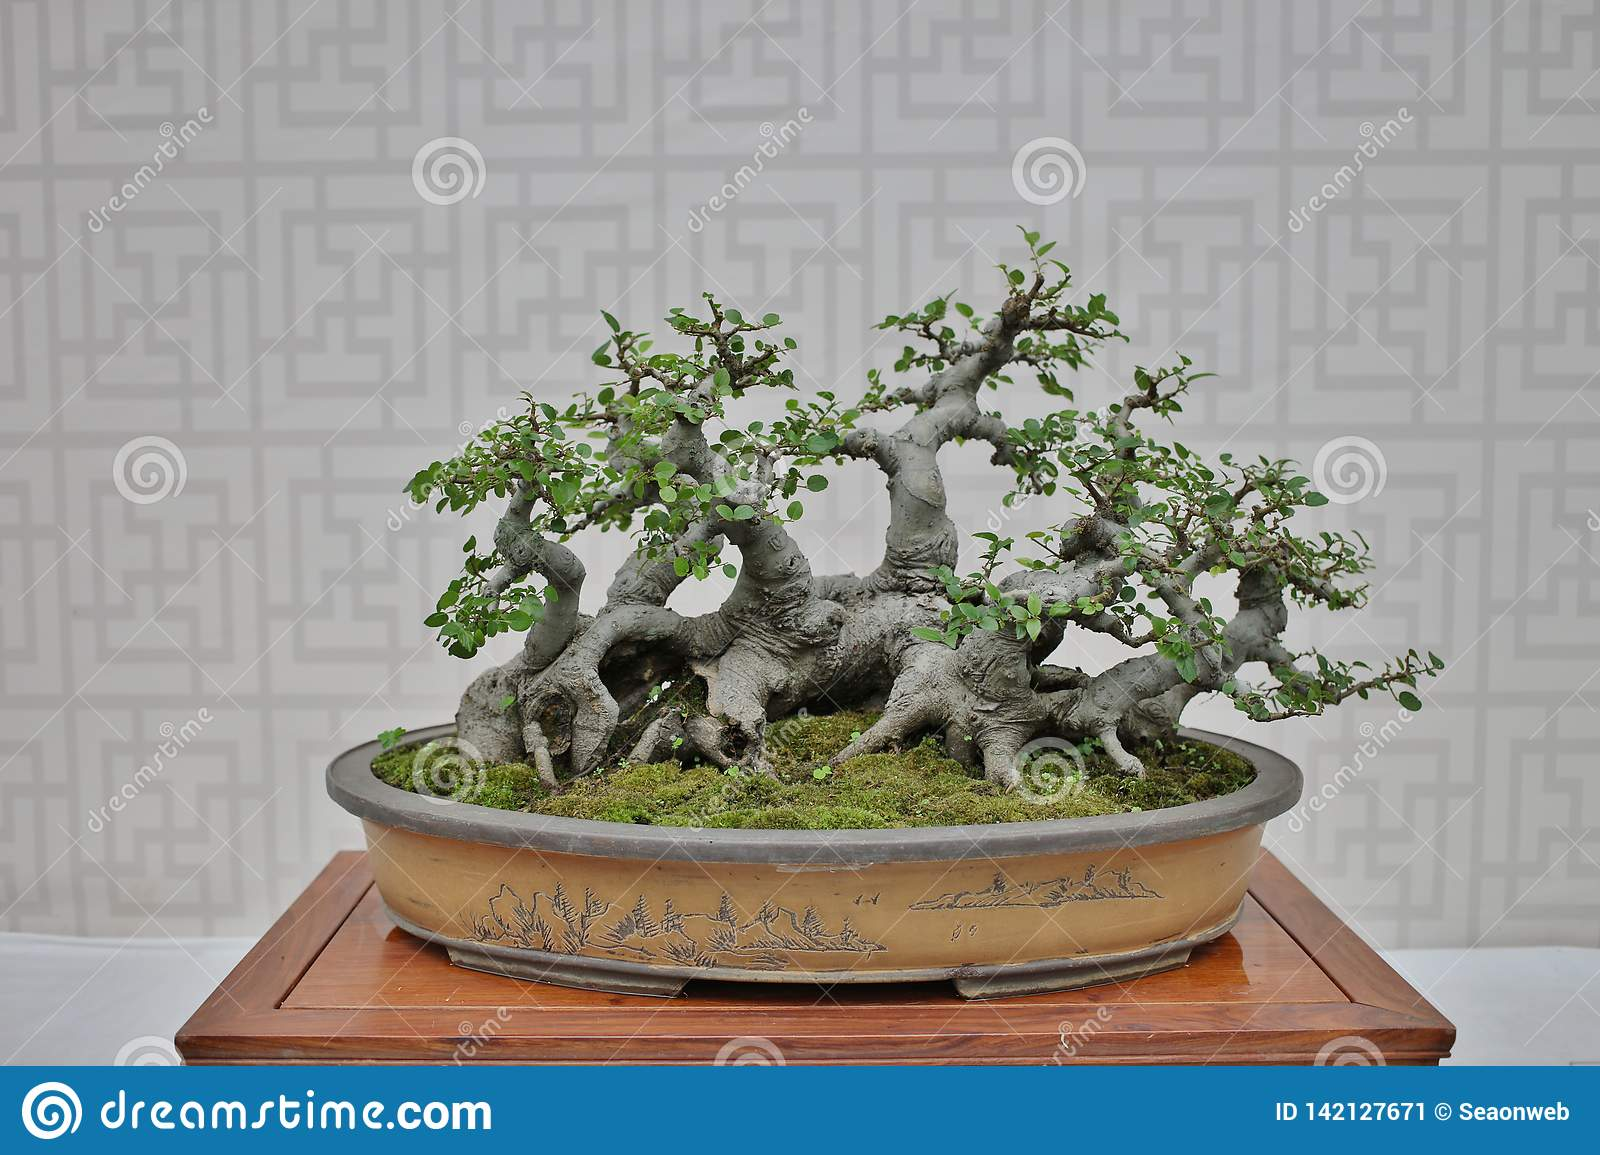 Bonsai And Penjing Landscape With Miniature Stock Image Image Of Garden Houseplant 142127671